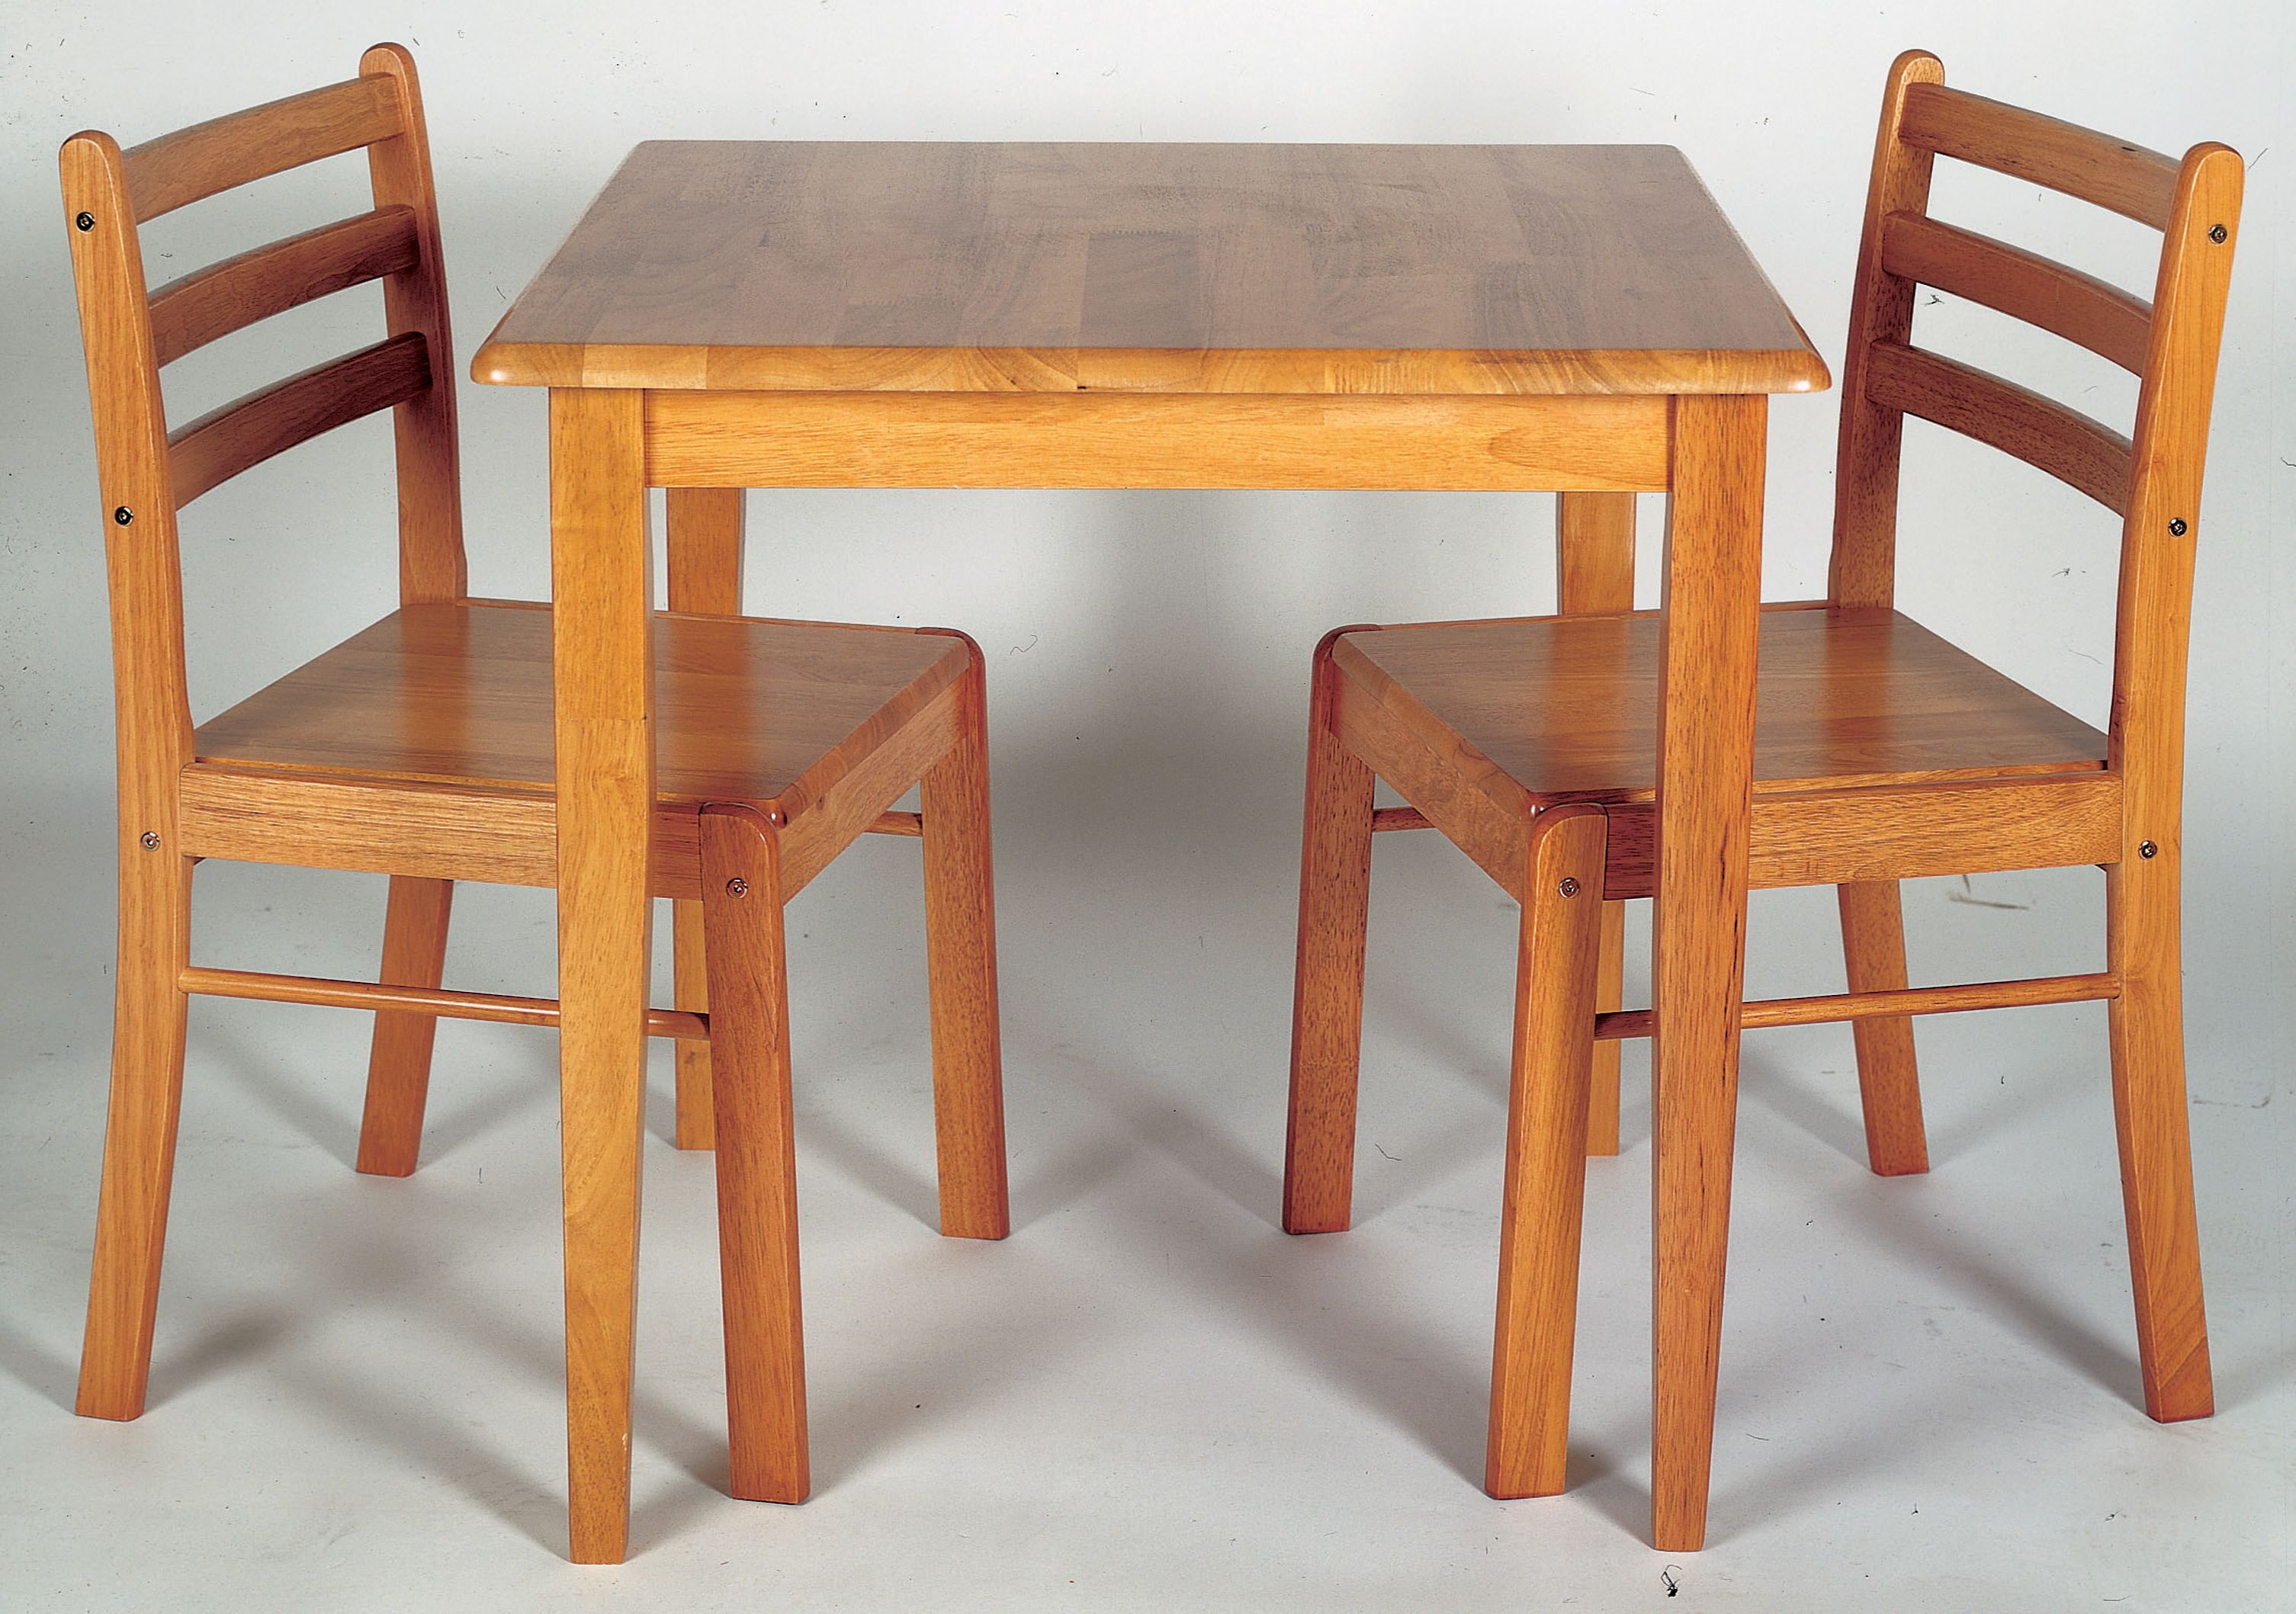 Honeymoon Antique Pine Finish Square Table With 2 Solid